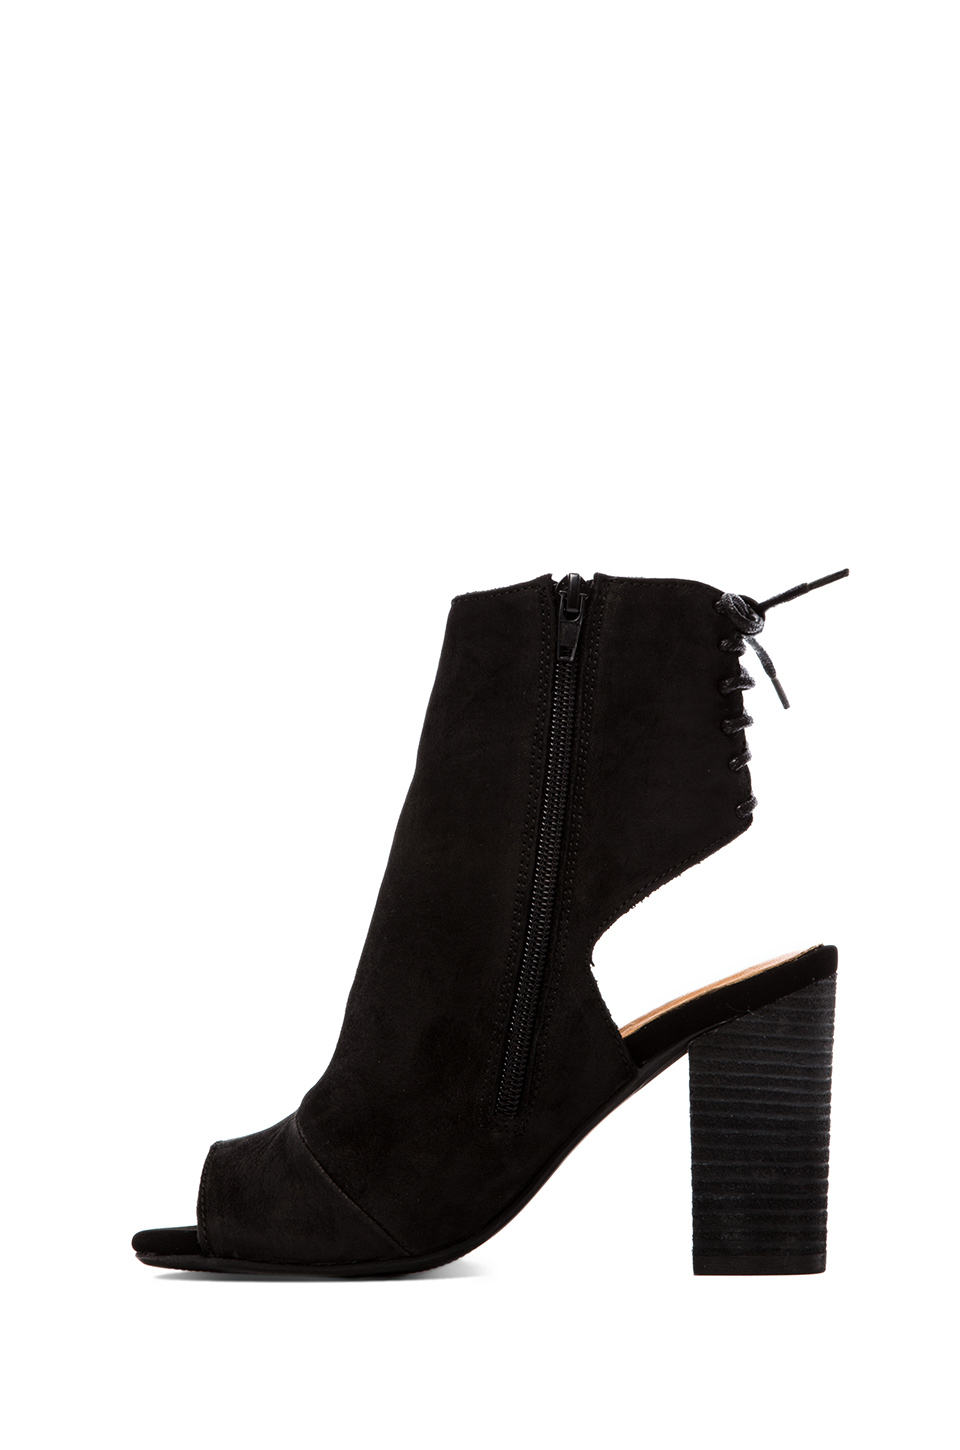 Lyst - Jeffrey Campbell Quincy Open Toe Heeled Booty In Black In Brown-2878